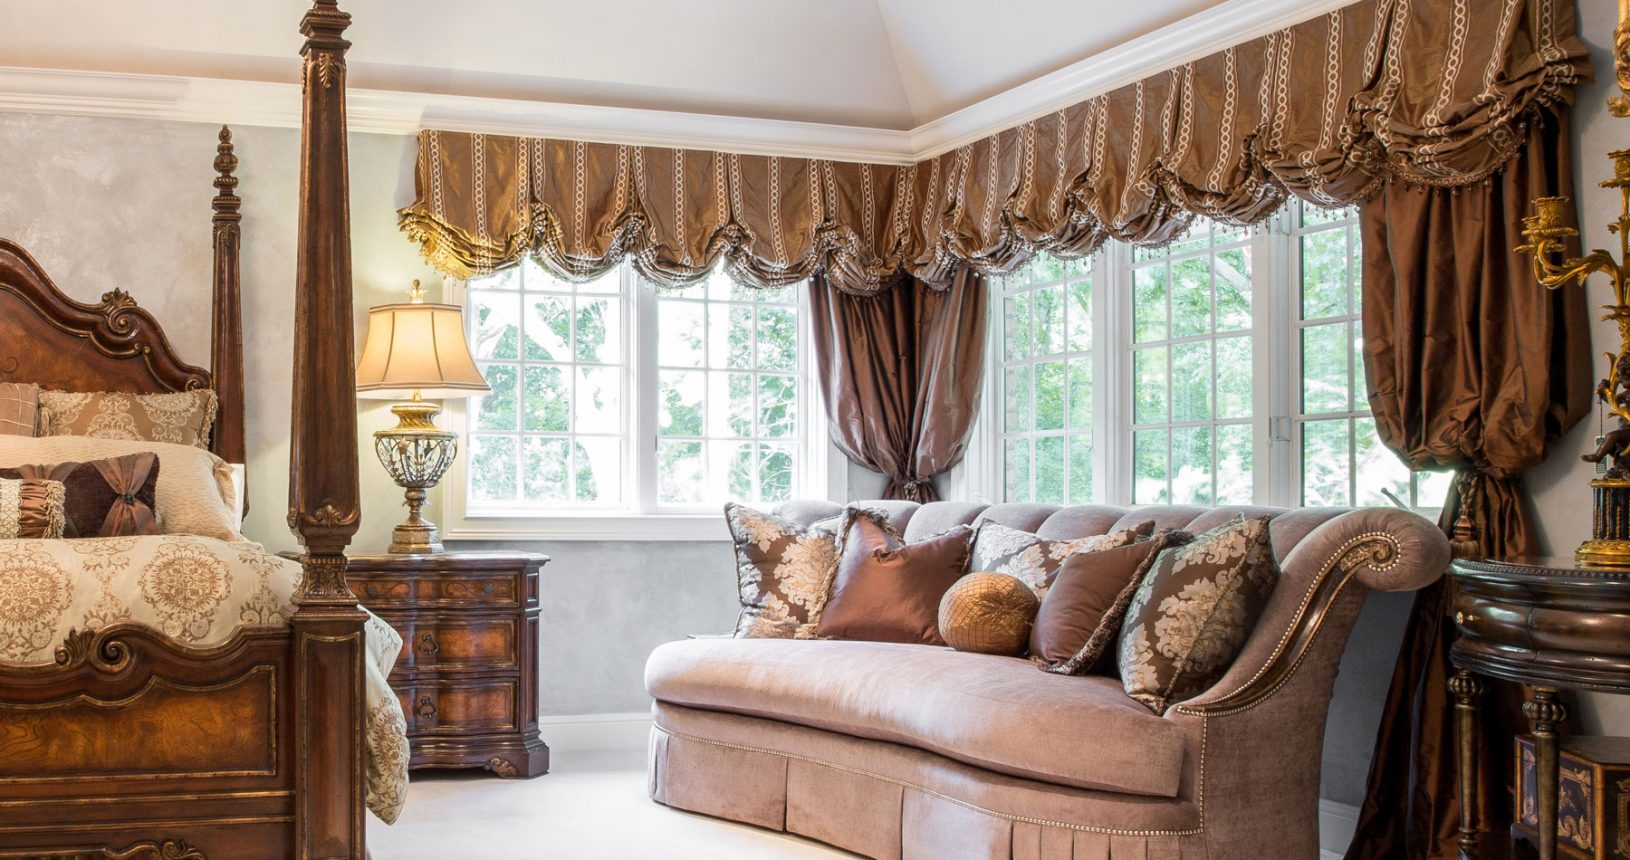 custom window treatments in master bedroom